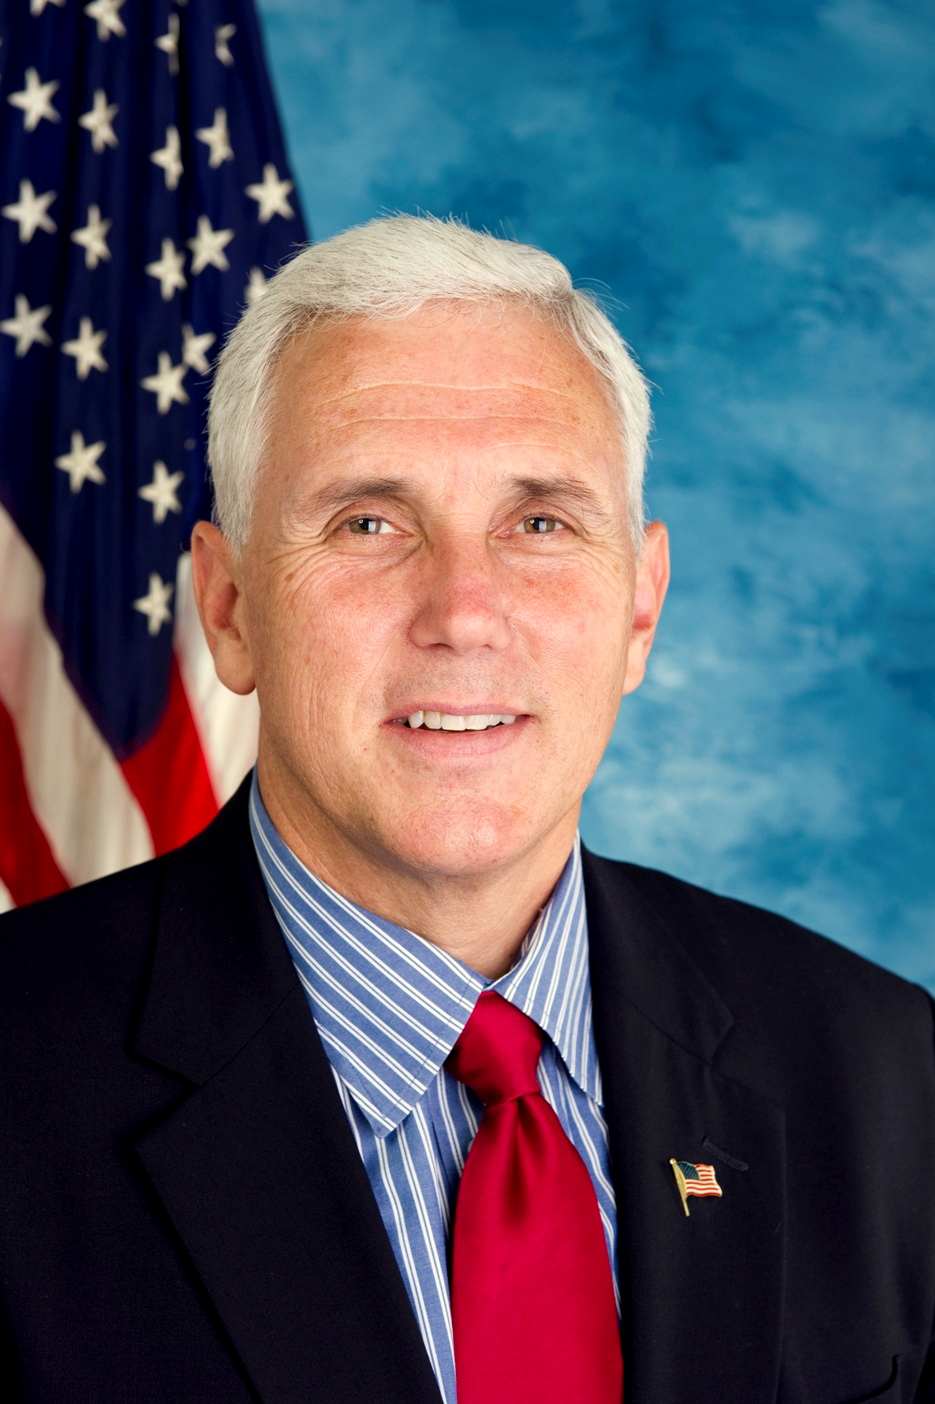 http://upload.wikimedia.org/wikipedia/commons/c/c9/Mike_Pence%2C_official_portrait%2C_112th_Congress.jpg